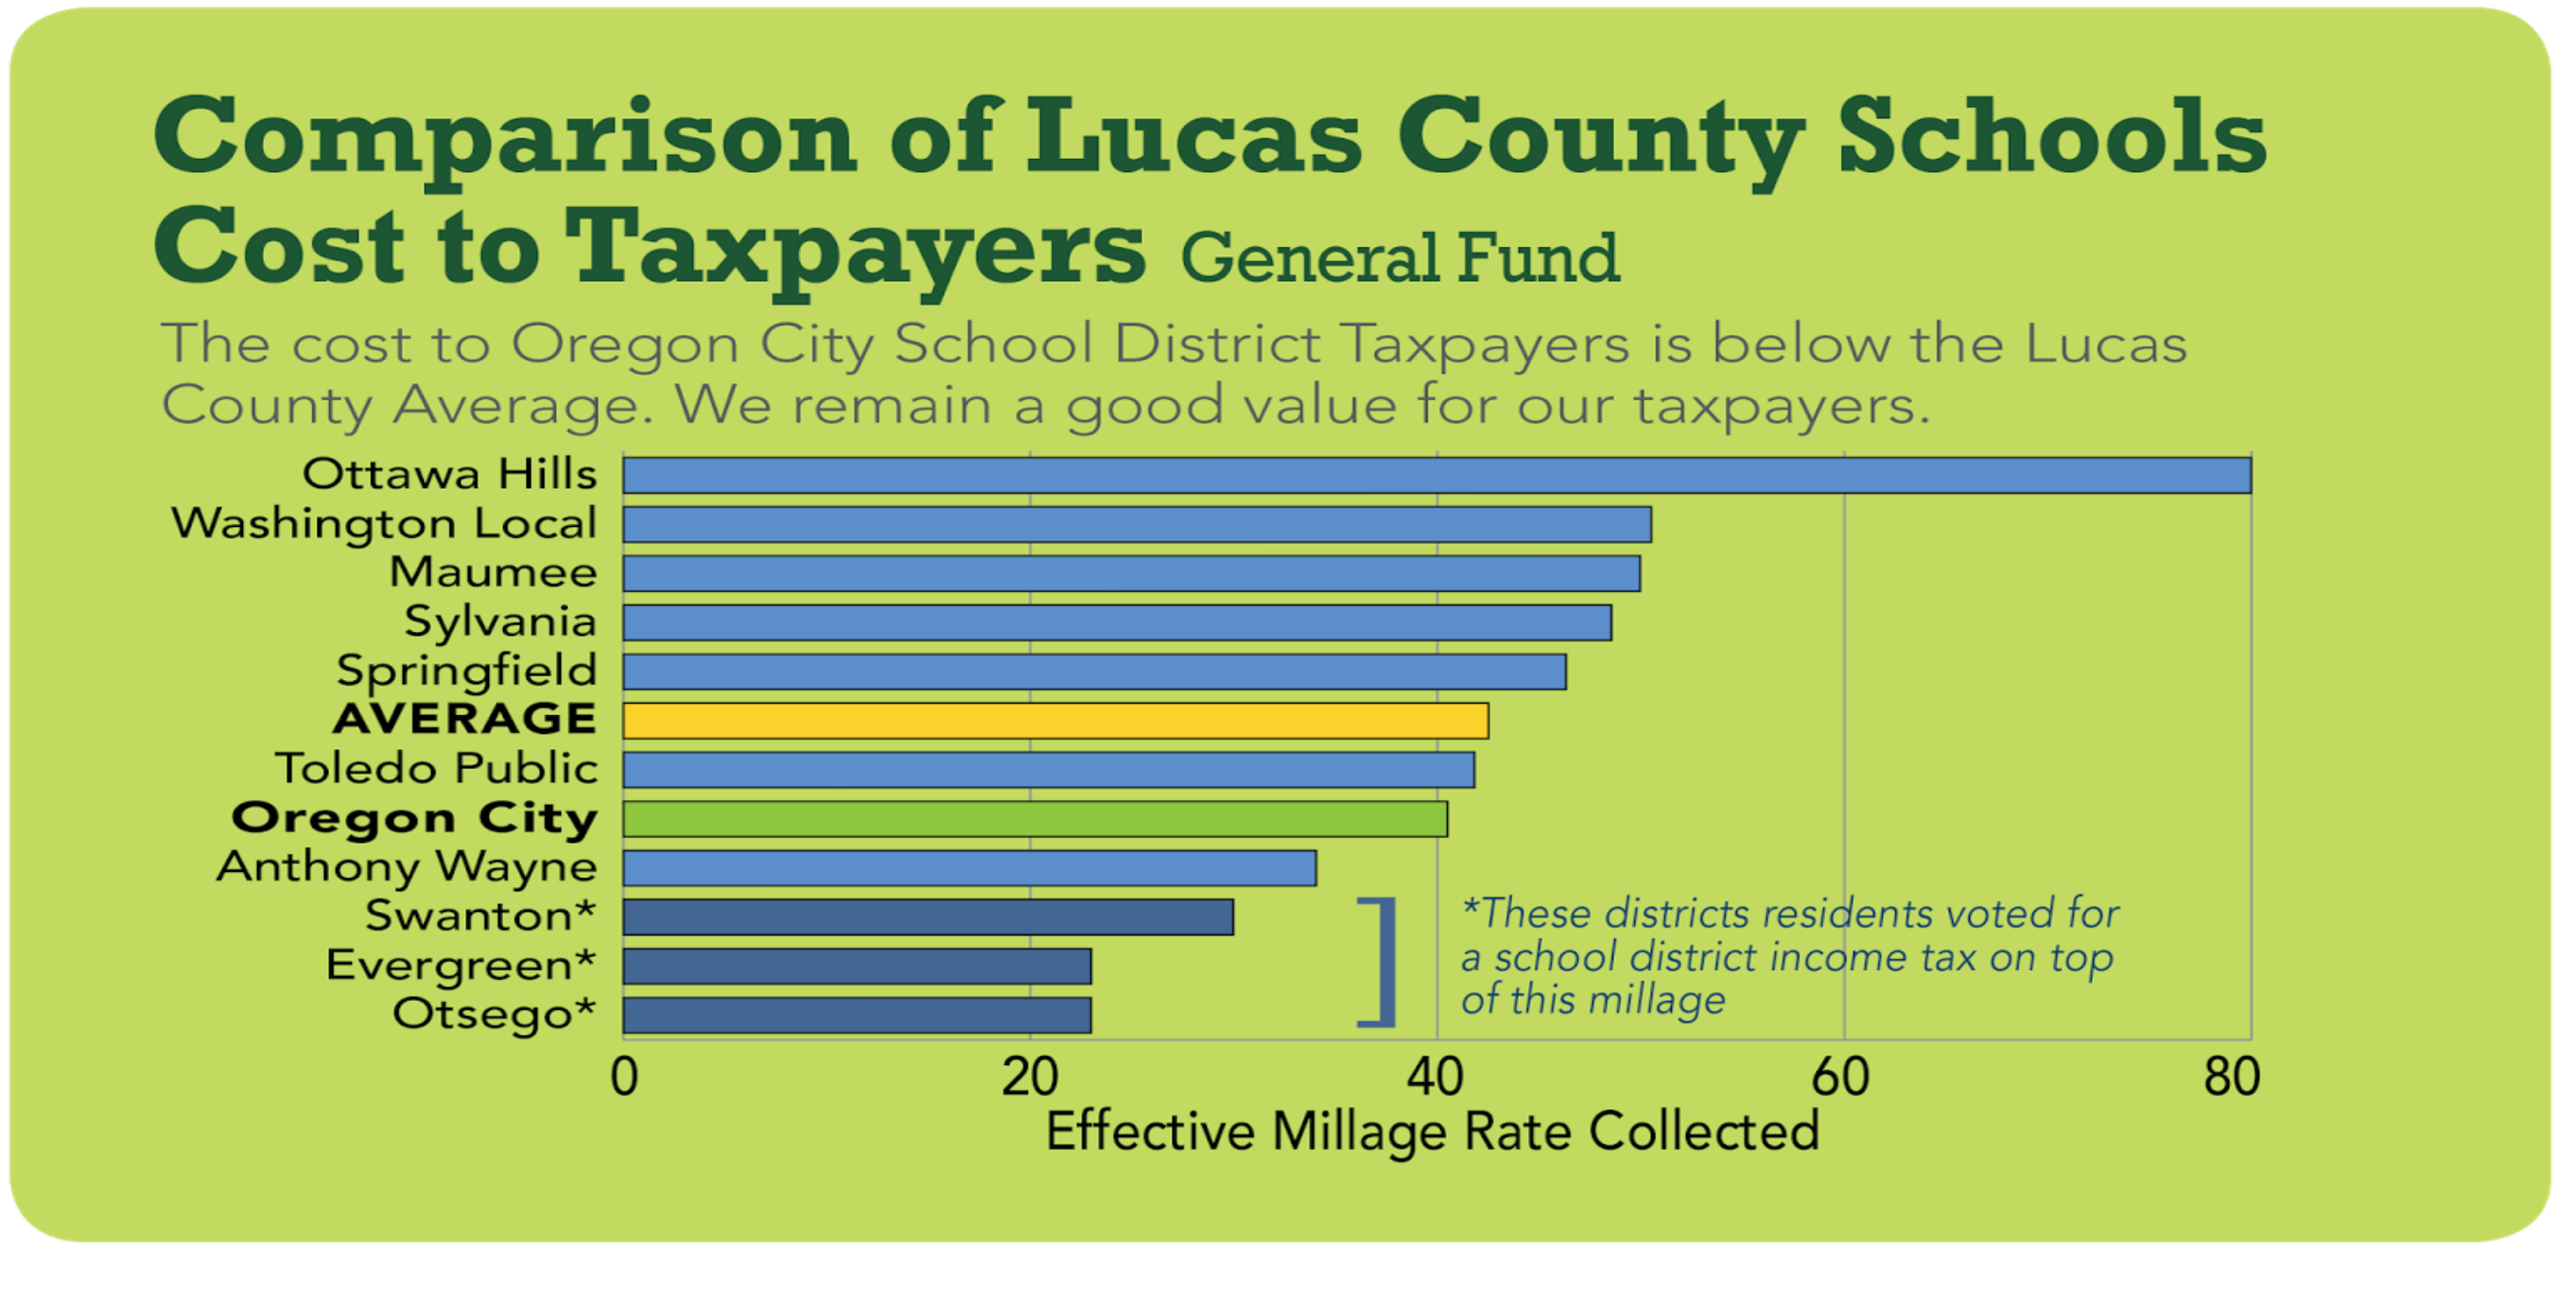 Graph of Lucas County Schools comparison to taxpayers